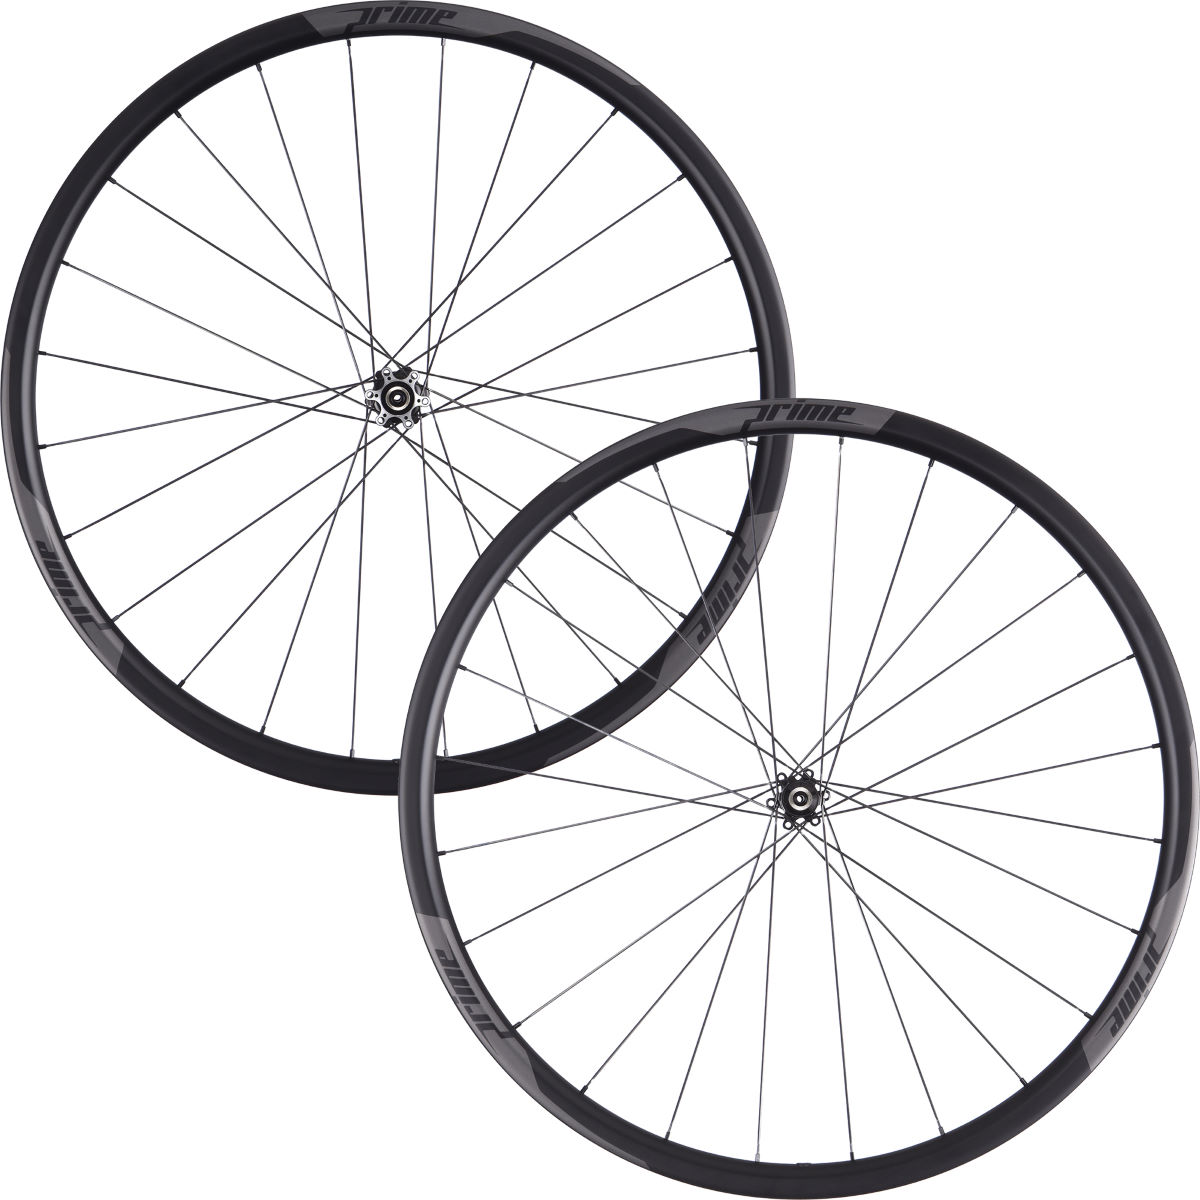 Prime RP-28 Carbon Clincher Disc Road Wheelset - 700c Shimano/SRAM Black Decal Roues performance